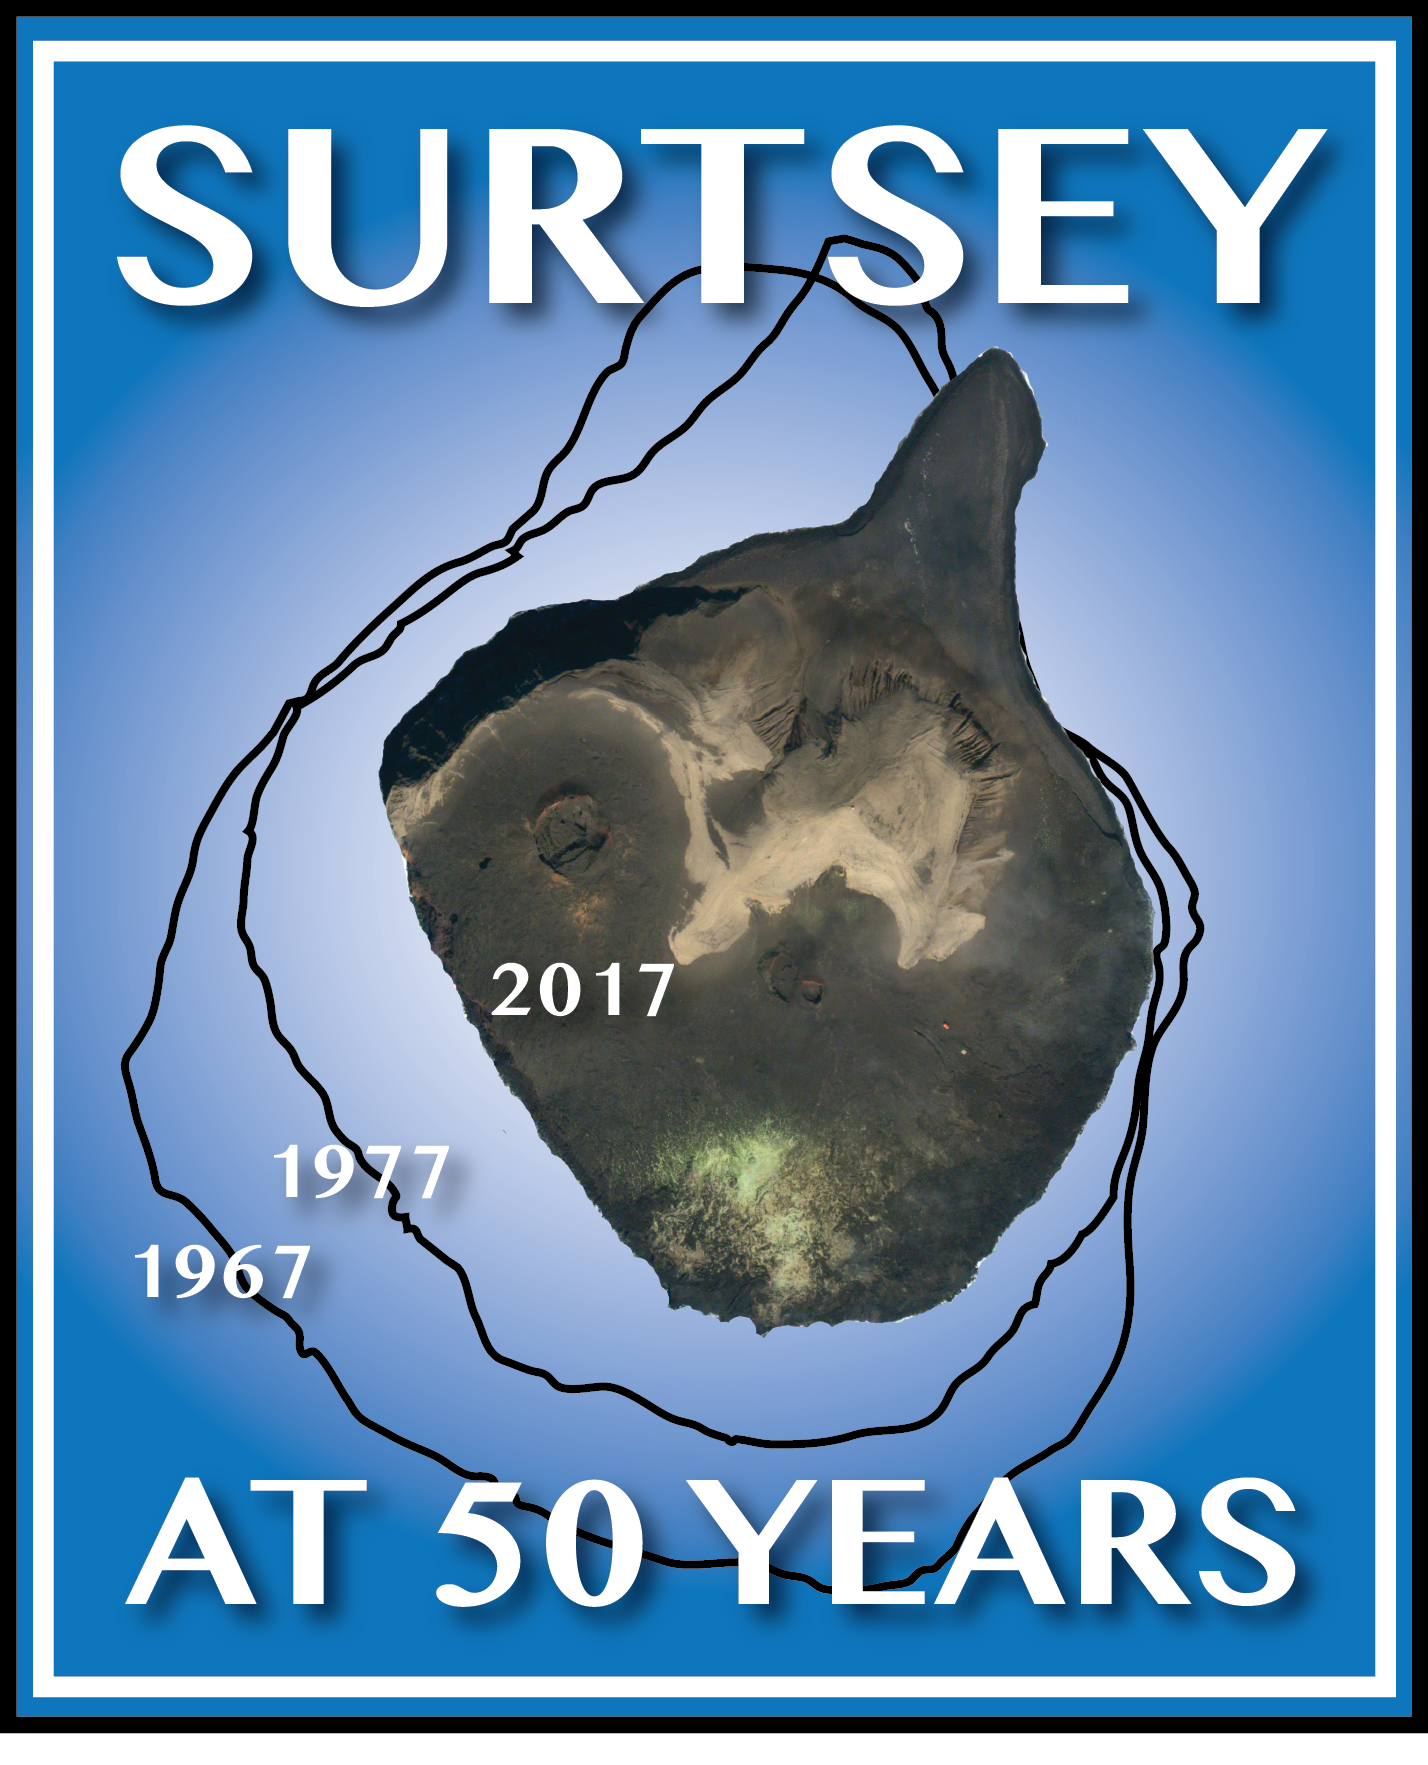 Surtsey at 50 Years